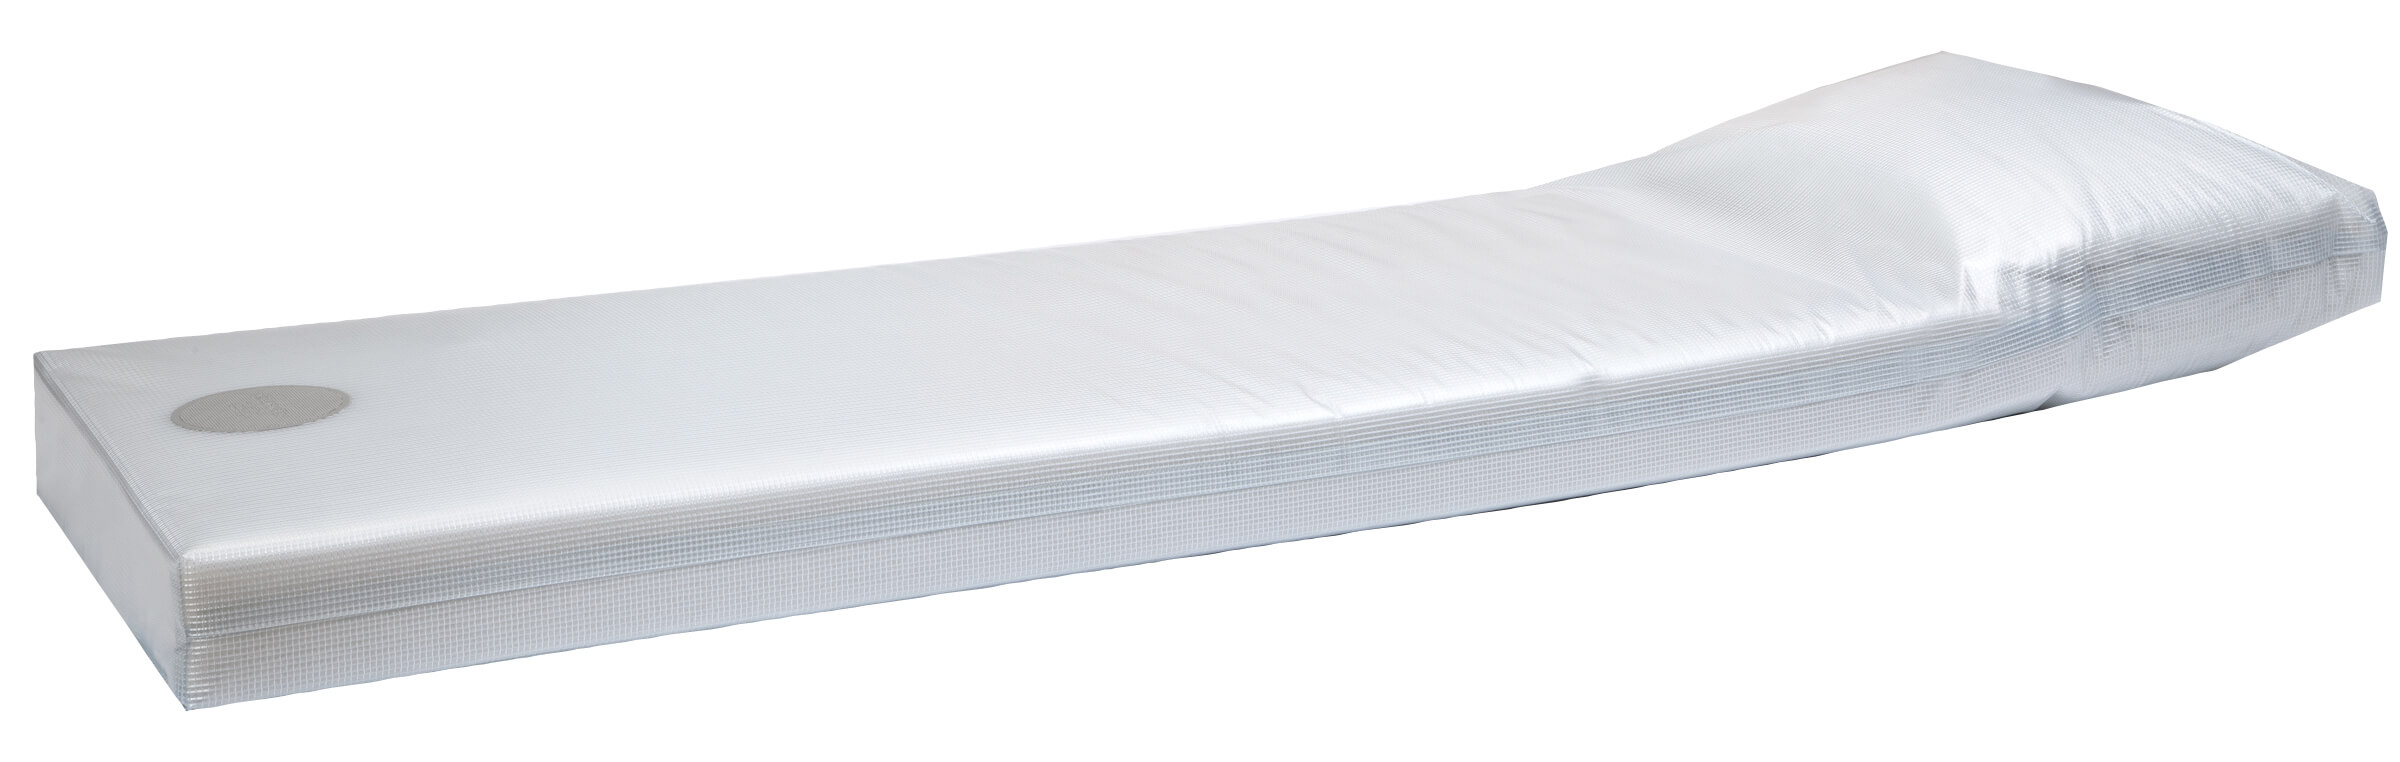 Clear Poly Core Sealed Mattress With Scrim